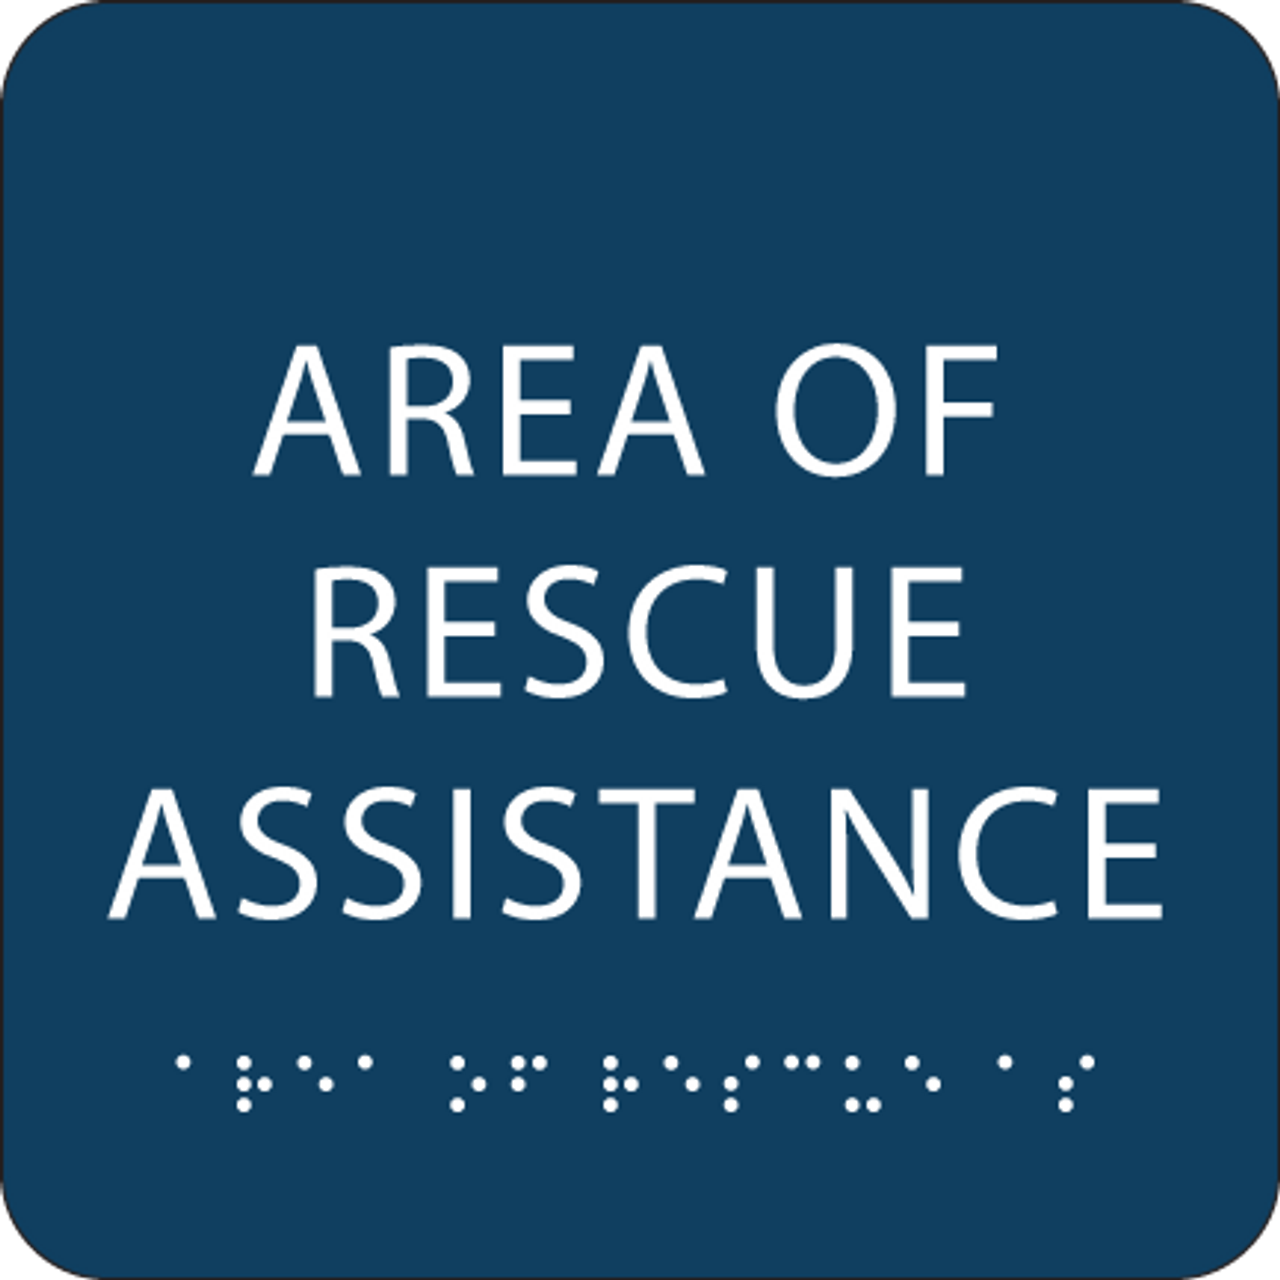 Dark Blue Area of Rescue Assistance ADA Sign